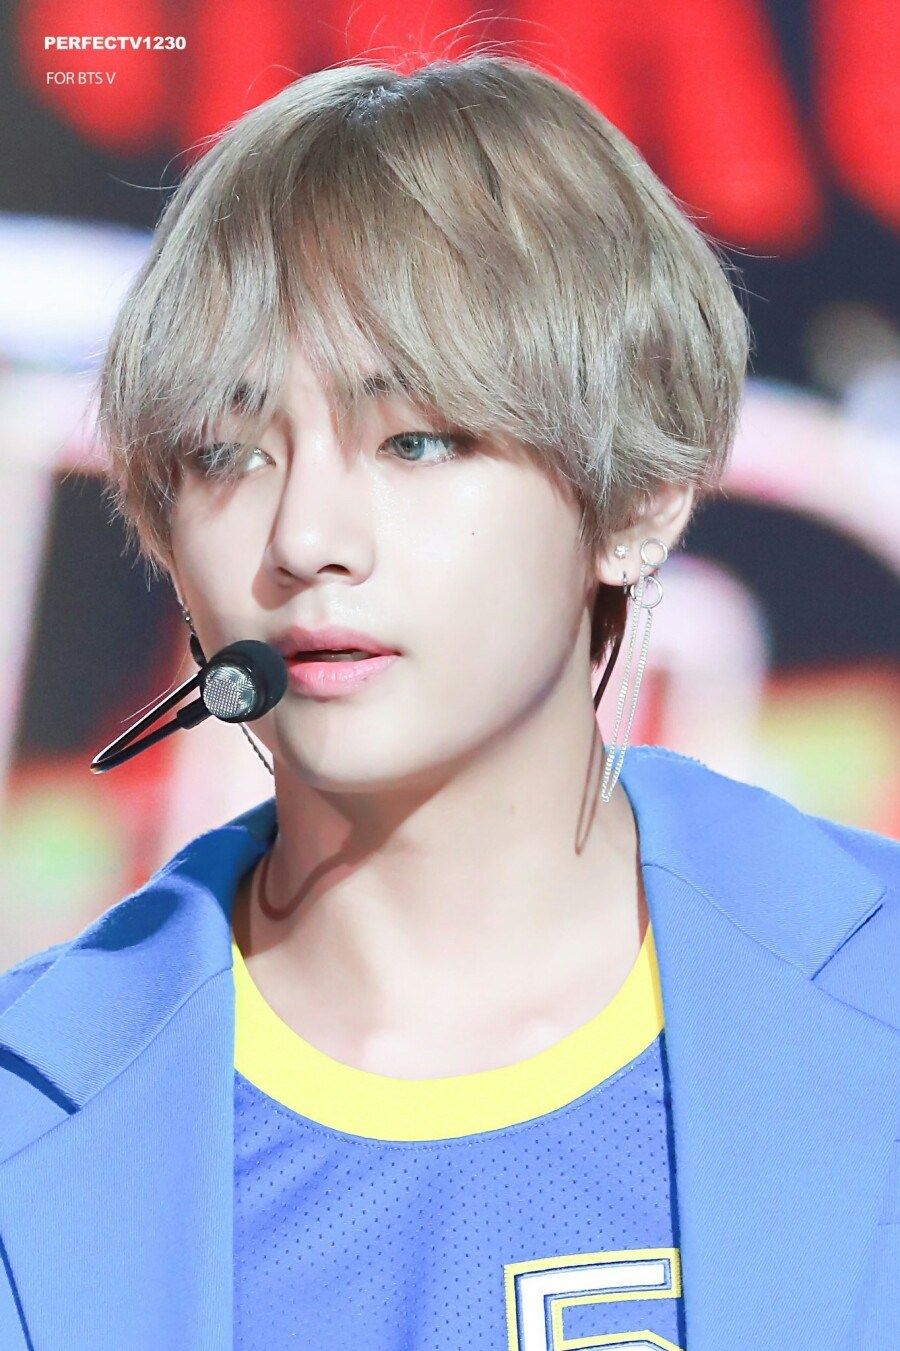 Korea Korean Kpop Idol Boy Band Group Bts Taehyung S Dna Hair Bangtan Long Silver Hairstyles Guys Men Kpopstuff Taehyung Bts Taehyung Kim Taehyung